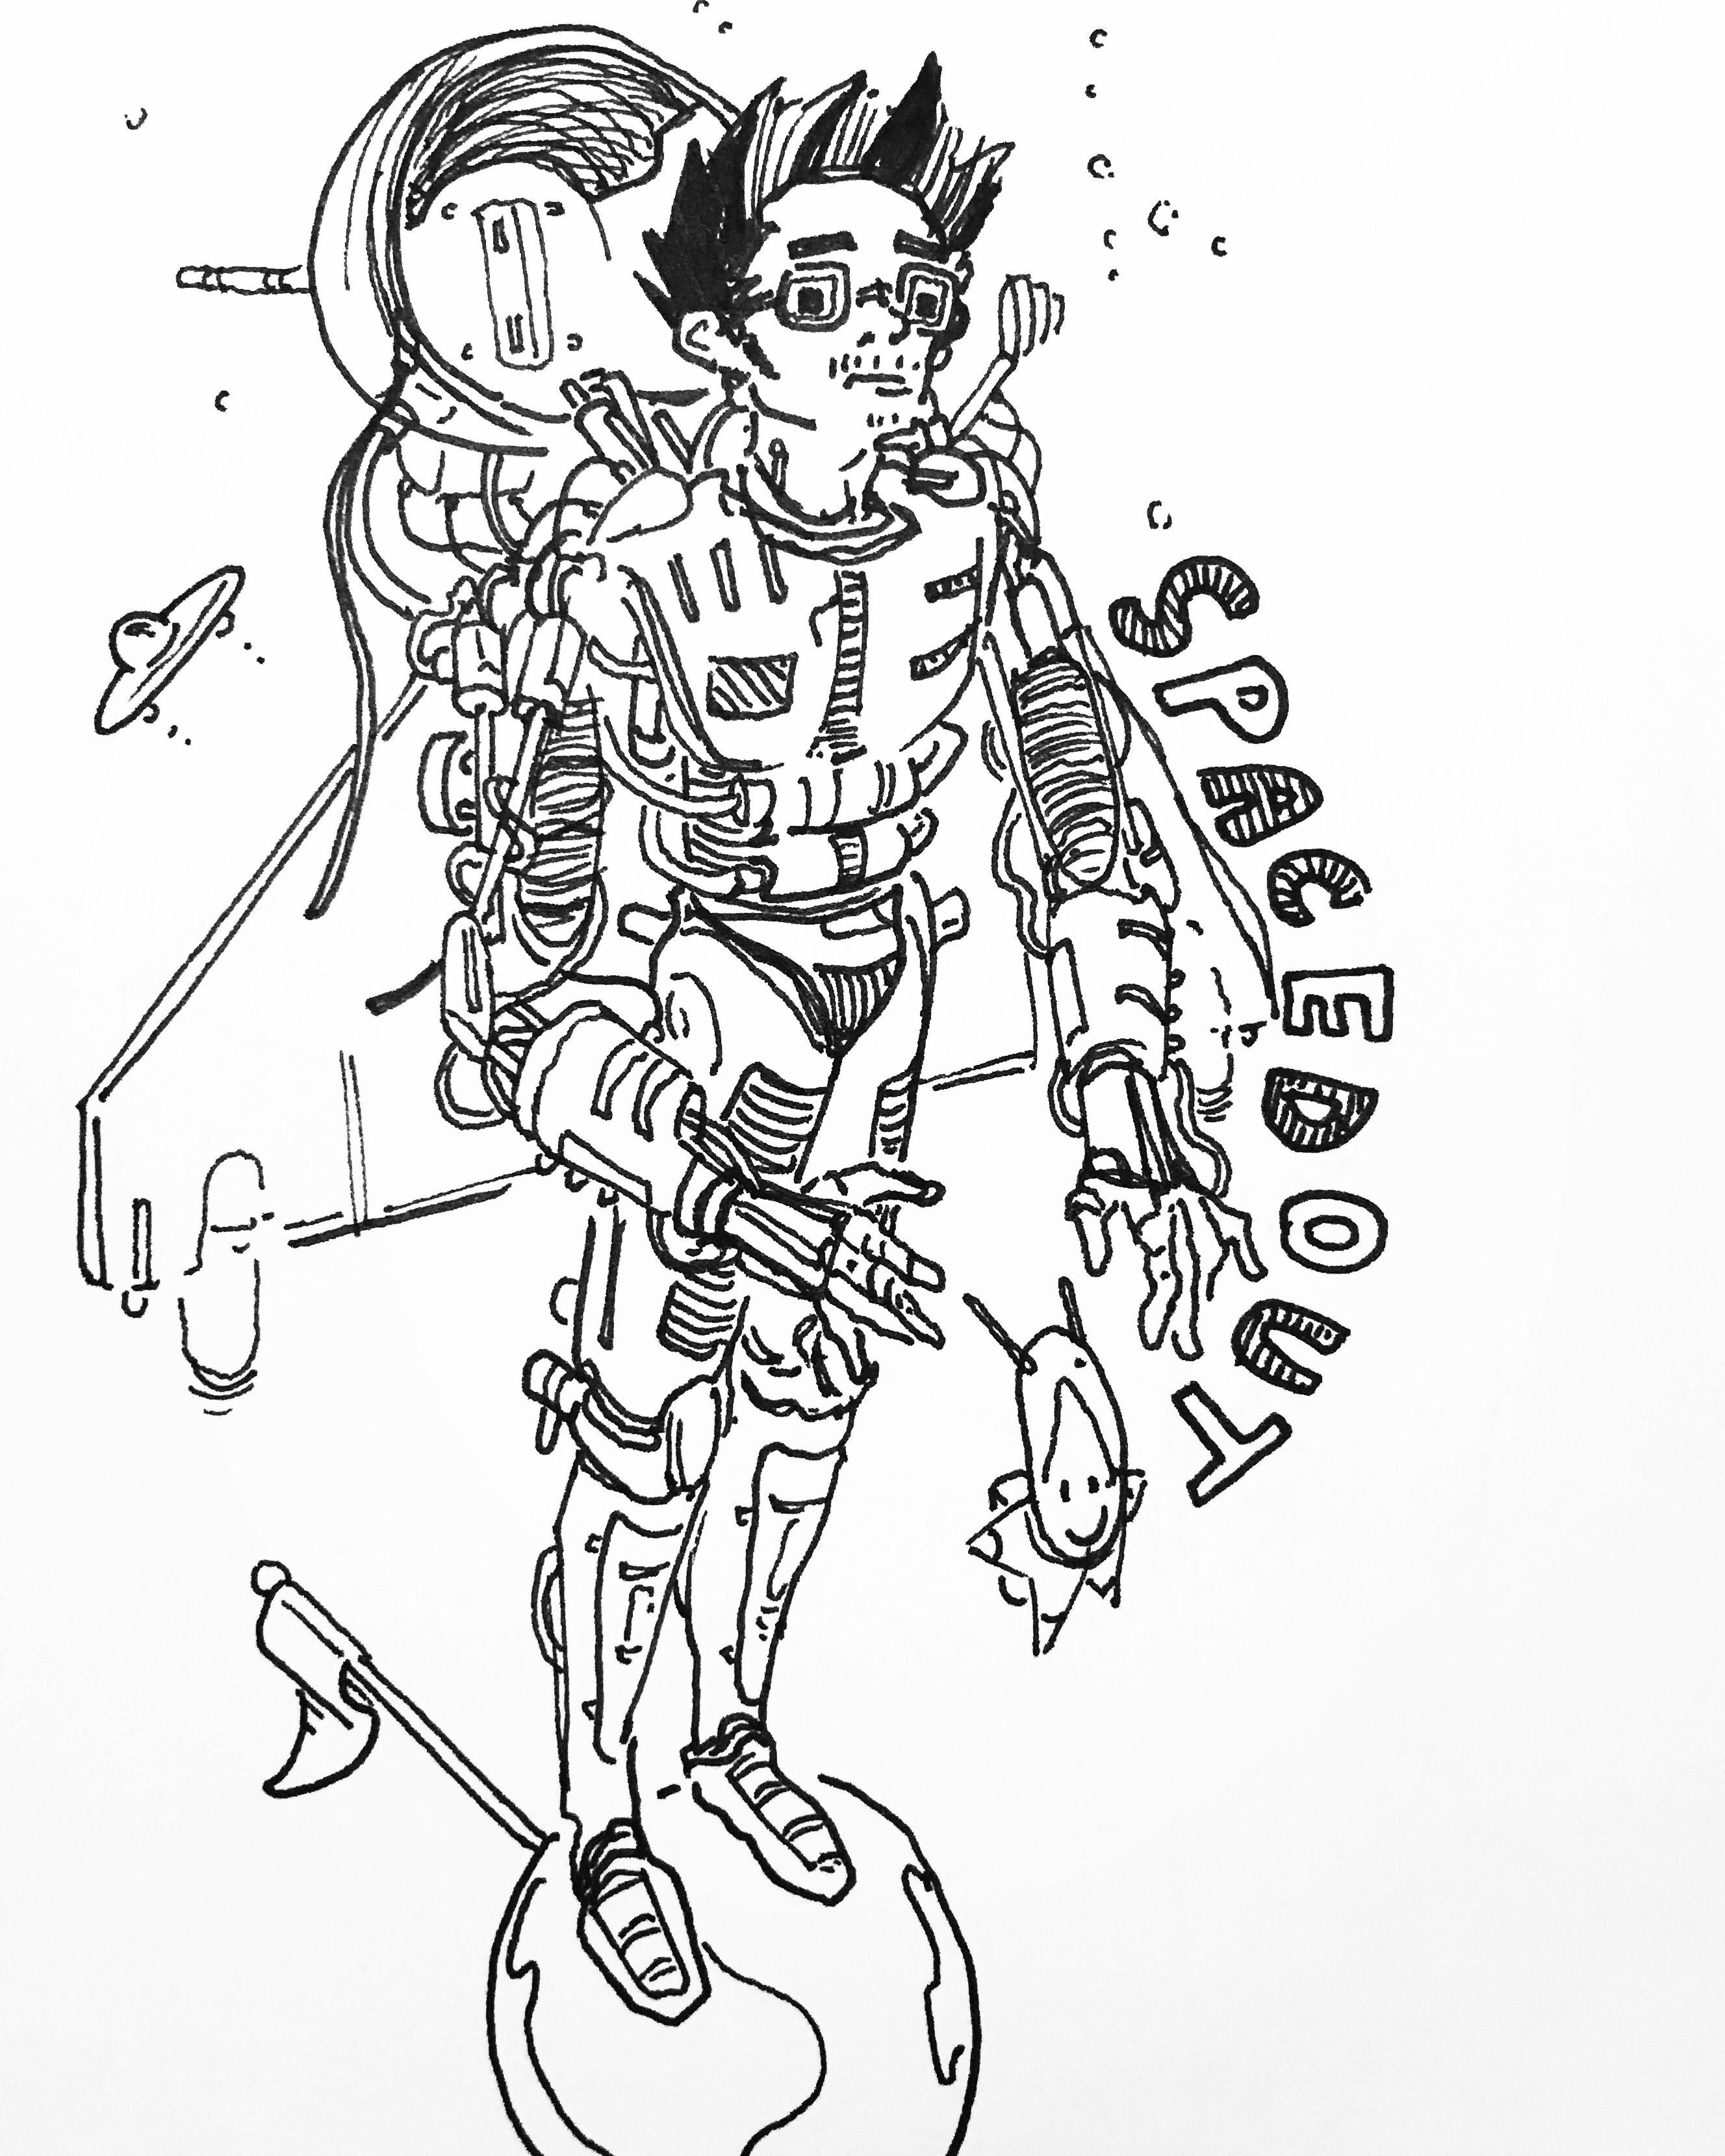 2655x3318 Doodling With My New Pen. (I.redd.it) Submitted By